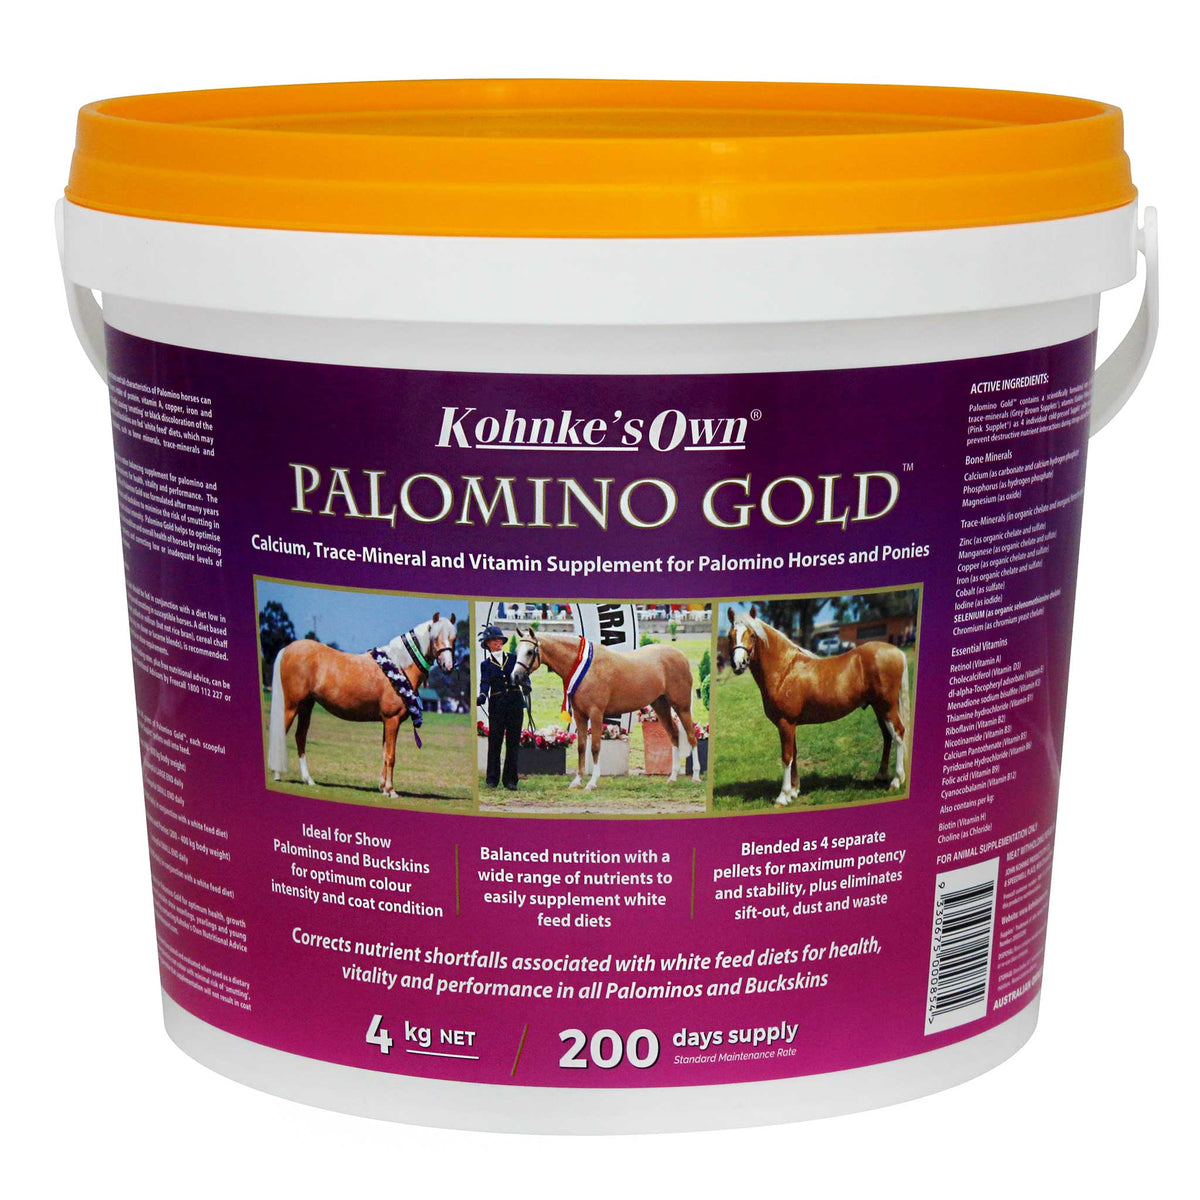 Kohnke's Own Palomino Gold